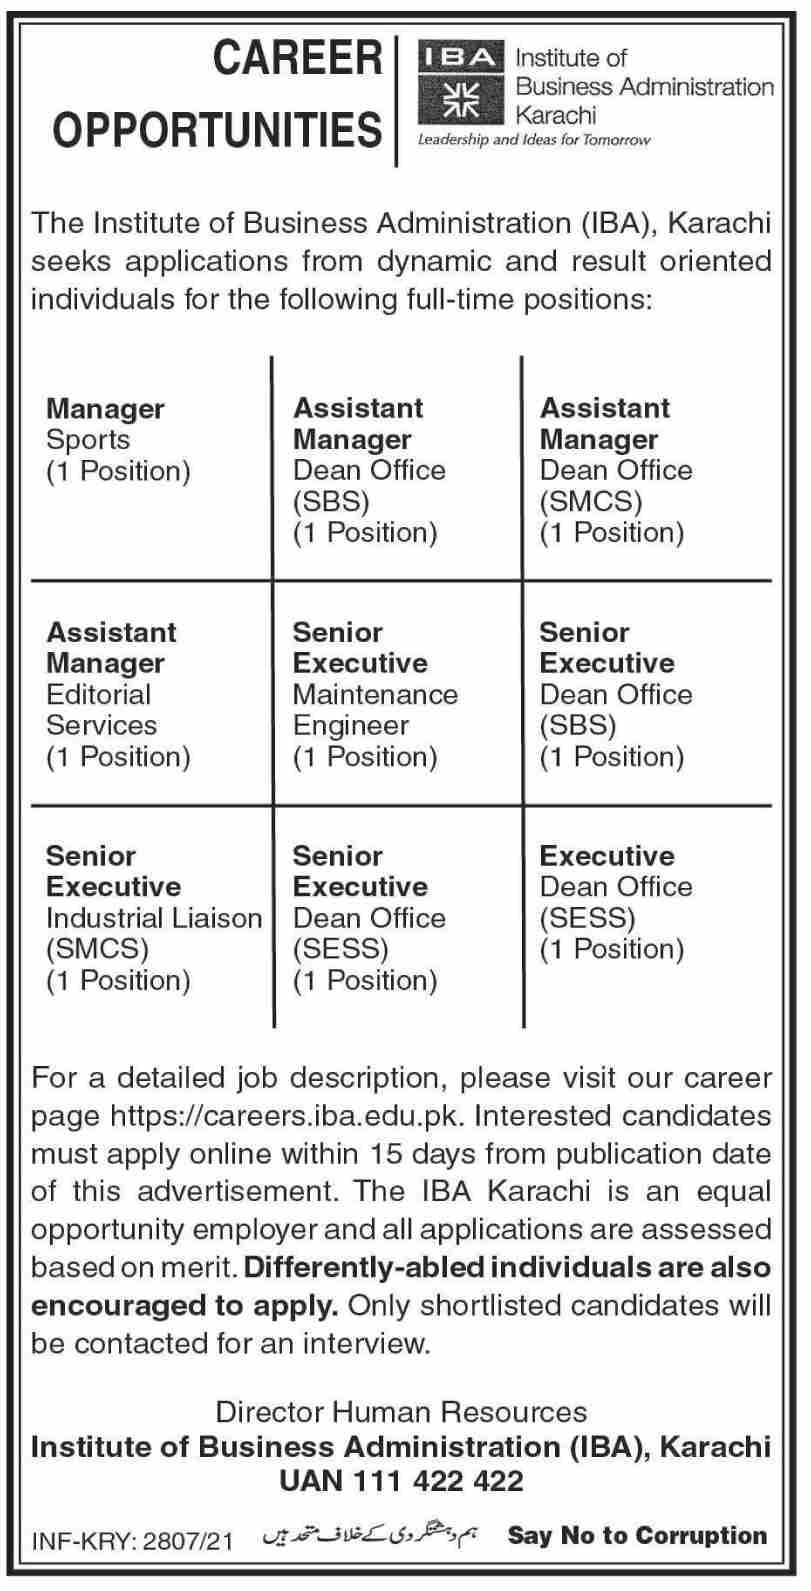 IBA Management Karachi Jobs 2021 in Institute of Business Administration